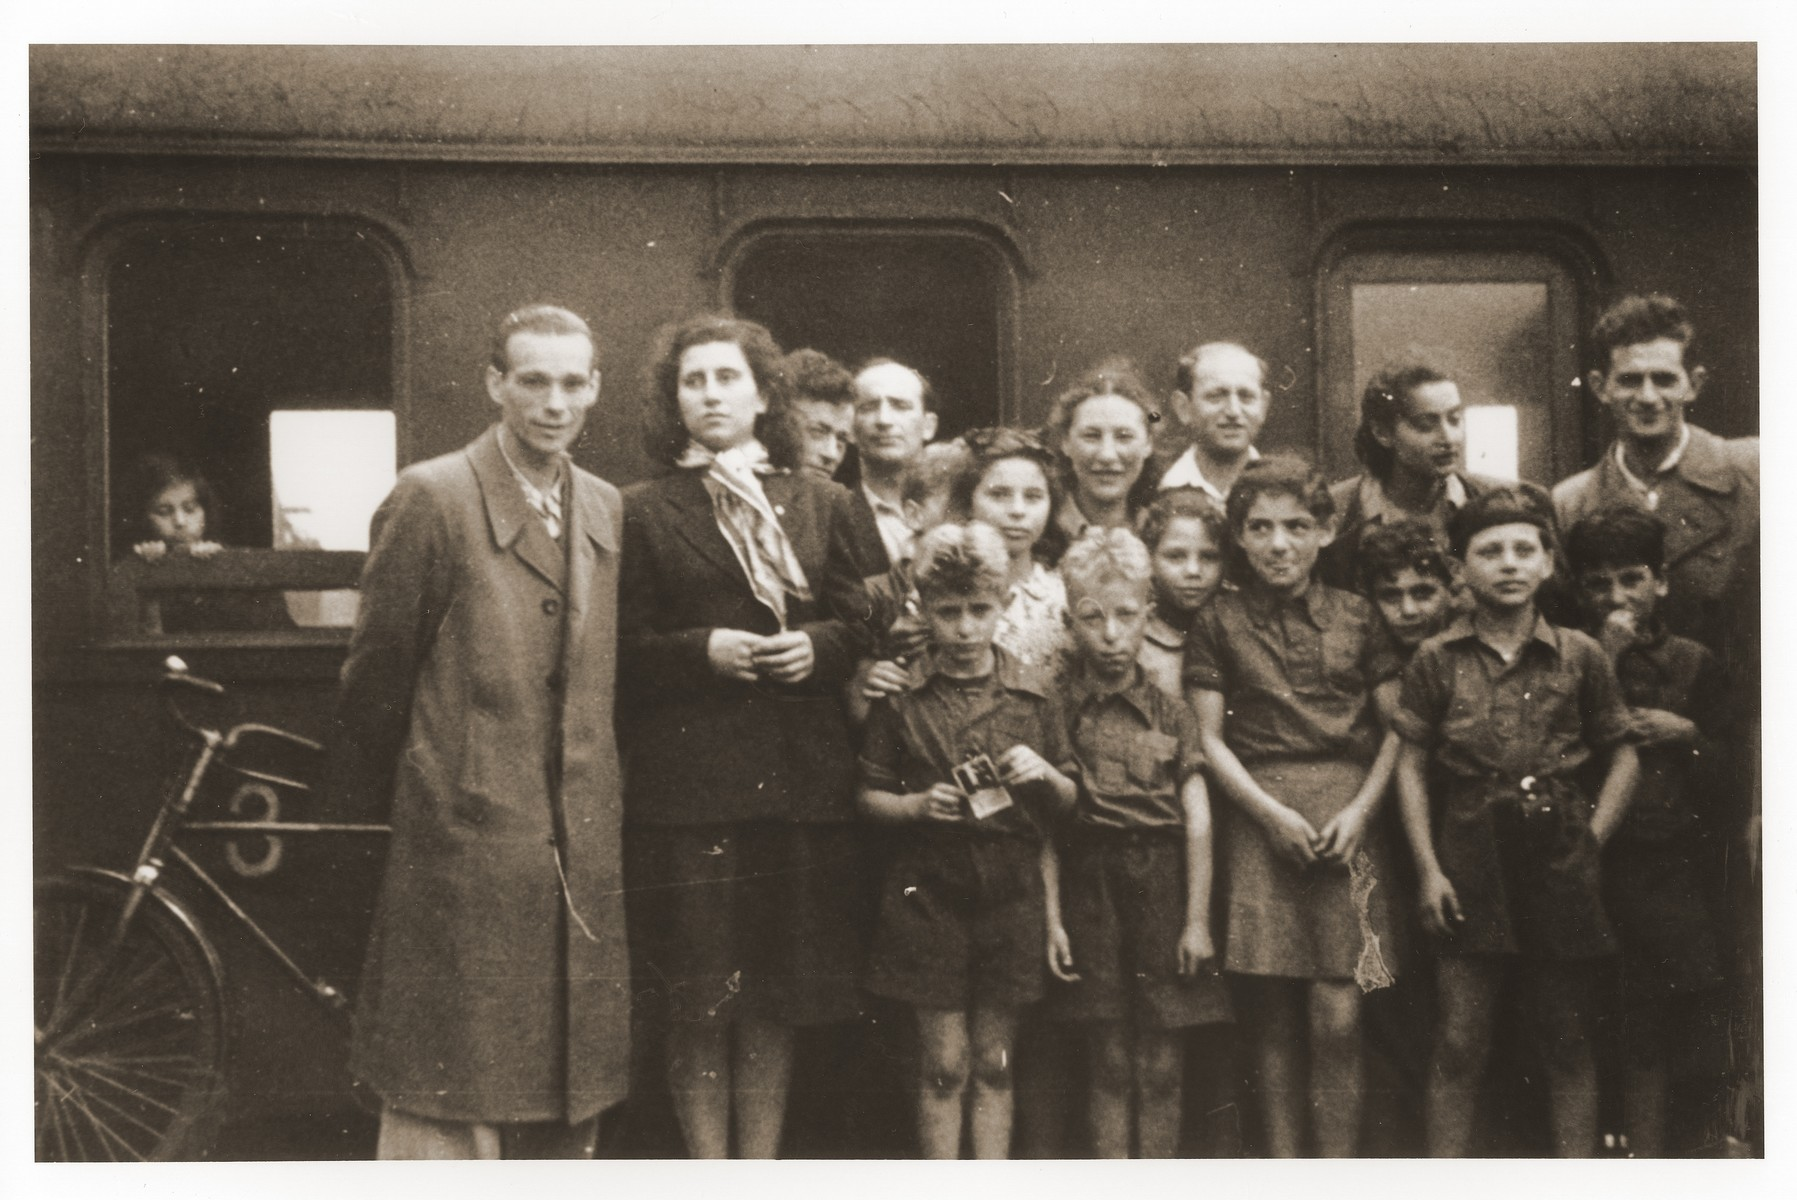 Group portrait of Youth Aliyah children from the Bergen-Belsen displaced persons camp in front of a train before their departure on the first leg of their journey to Palestine.  Szaja Aron Knobler (now Alex Knobler) is the son of Moszek and Jocheta Knobler.  He was born in 1921 in Bedzin, Poland.  Szaja had three older sisters, Ita, Esther and Leah.  In 1931 the family moved to Chorzow near the German border.  There Szaja became active in the Akiba Zionist youth movement.  In 1938 he joined the Akiba hachshara [agricultural training farm] in Bielsko and made plans to immigrate to Palestine.  His plans were thwarted, however, by the start of World War II.  In the first months of the war Szaja fled to the Soviet sector of Poland, where he explored possible exit routes to Palestine via Romania for the nascent Zionist underground.  During a visit home in 1940 Szaja was caught up in the forced resettlement of his family to the Sosnowiec ghetto.  From Sosnowiec Szaja was deported to the Blechhammer labor camp, where he remained until the camp was evacuated in January 1945.  During the forced march out of the camp Szaja ran away with two friends.  German guards shot and killed his friends but Szaja escaped.  Posing as a Polish laborer, Szaja found refuge with a German farmer in Gleiwitz until liberation.  After the war Szaja, who was the sole survivor of his immediate family, took a leading role in the setting up of Zionist collectives in Poland.  He also was active in the Bricha and Aliyah Bet [illegal immigration to Palestine] movement.  This activity led to his arrest in Sosnowiec by the NKVD.  Following his release from prison, Szaja left Poland for Germany.  During the summer of 1945 Szaja organized Zionist activities at the Foehrenwald displaced persons camp.  In October he moved on to the Bergen-Belsen DP camp, where he joined a group of 400 would-be immigrants to Palestine.  The group sailed aboard the Tel Hai from Marseilles in March 1946.  When the ship reached Palestine, it was intercepted by the British and its passengers interned for three weeks in Athlit.  Following his release Szaja settled in Kibbutz Masada, but by December 1946 he was back in Germany.  Serving as an emissary for NOHAM (Noar Halutzi Meuchad), a Zionist youth umbrella group, Szaja distributed immigration certificates and organized Youth Aliyah groups in the DP camps.  While working at the Belsen DP camp Szaja met Pola Blicblum, a survivor from Lodz.  They were married in the Landsberg DP camp on July 30, 1947.  Soon after they settled in Palestine.